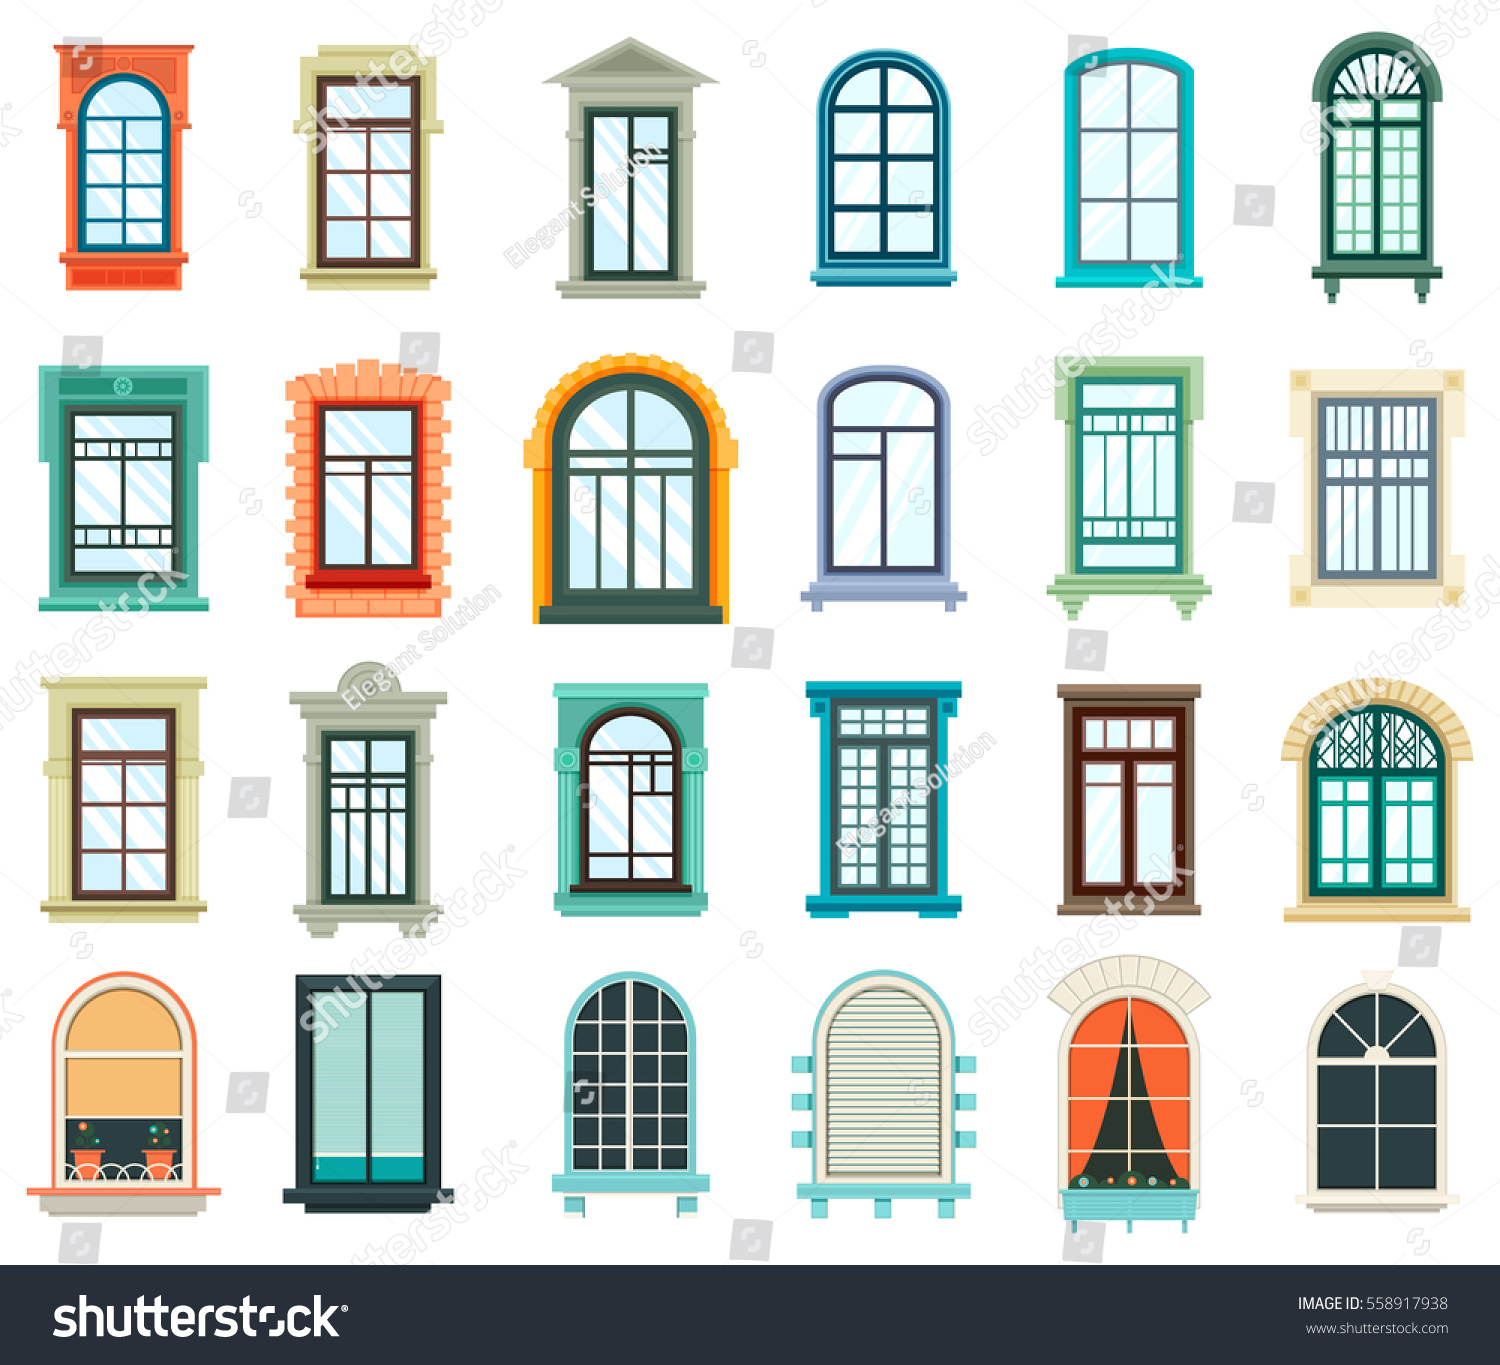 Retro wood wooden window frames view stock vector for Window frame designs house design